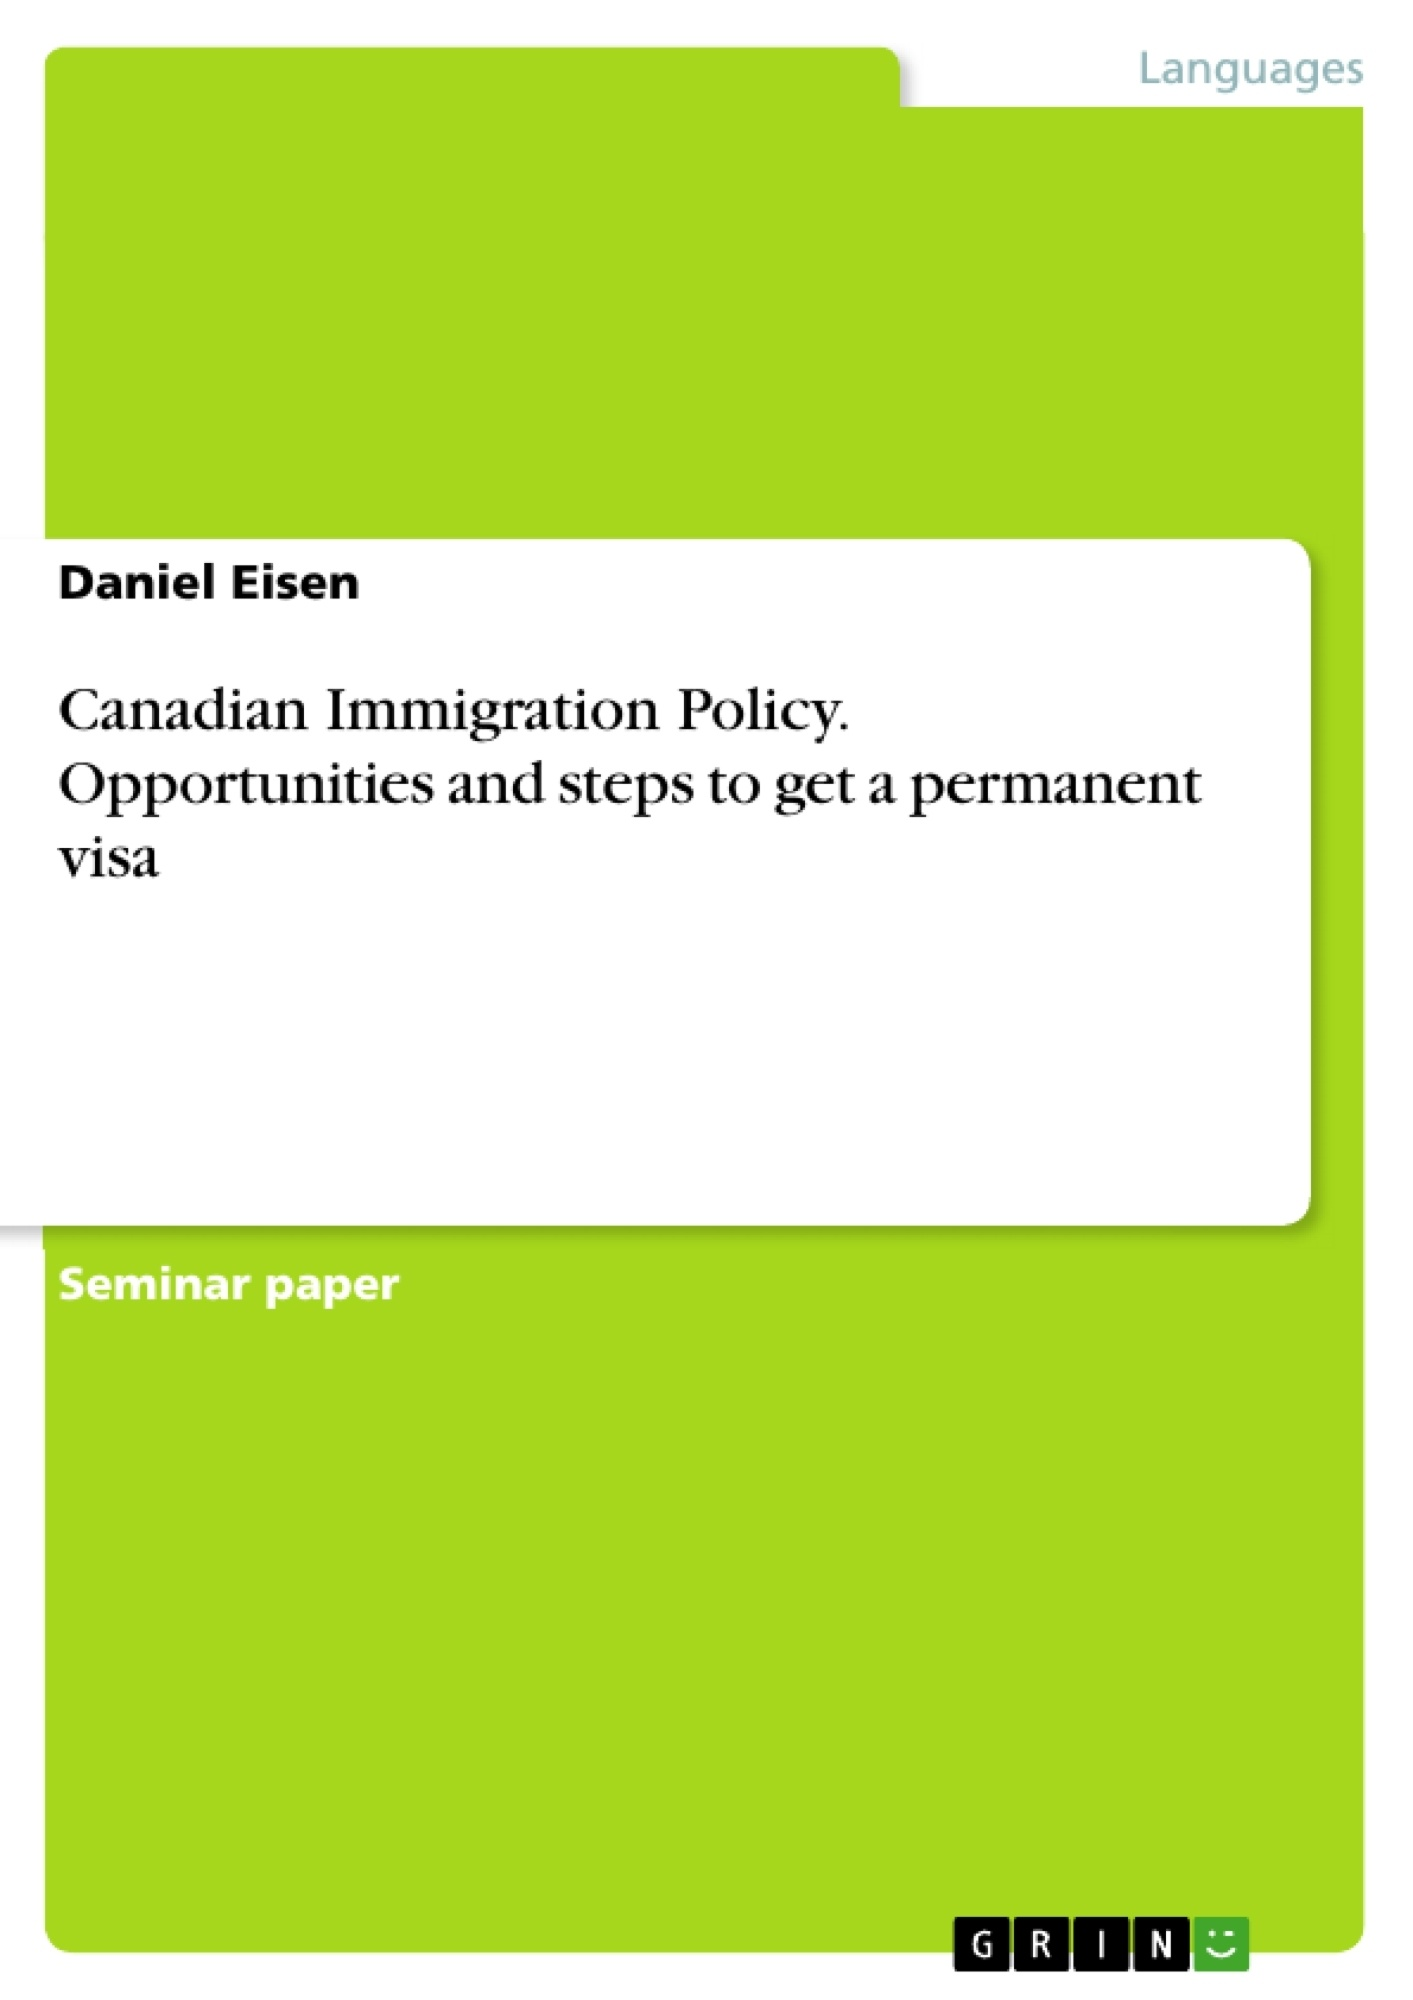 Title: Canadian Immigration Policy. Opportunities and steps to get a permanent visa